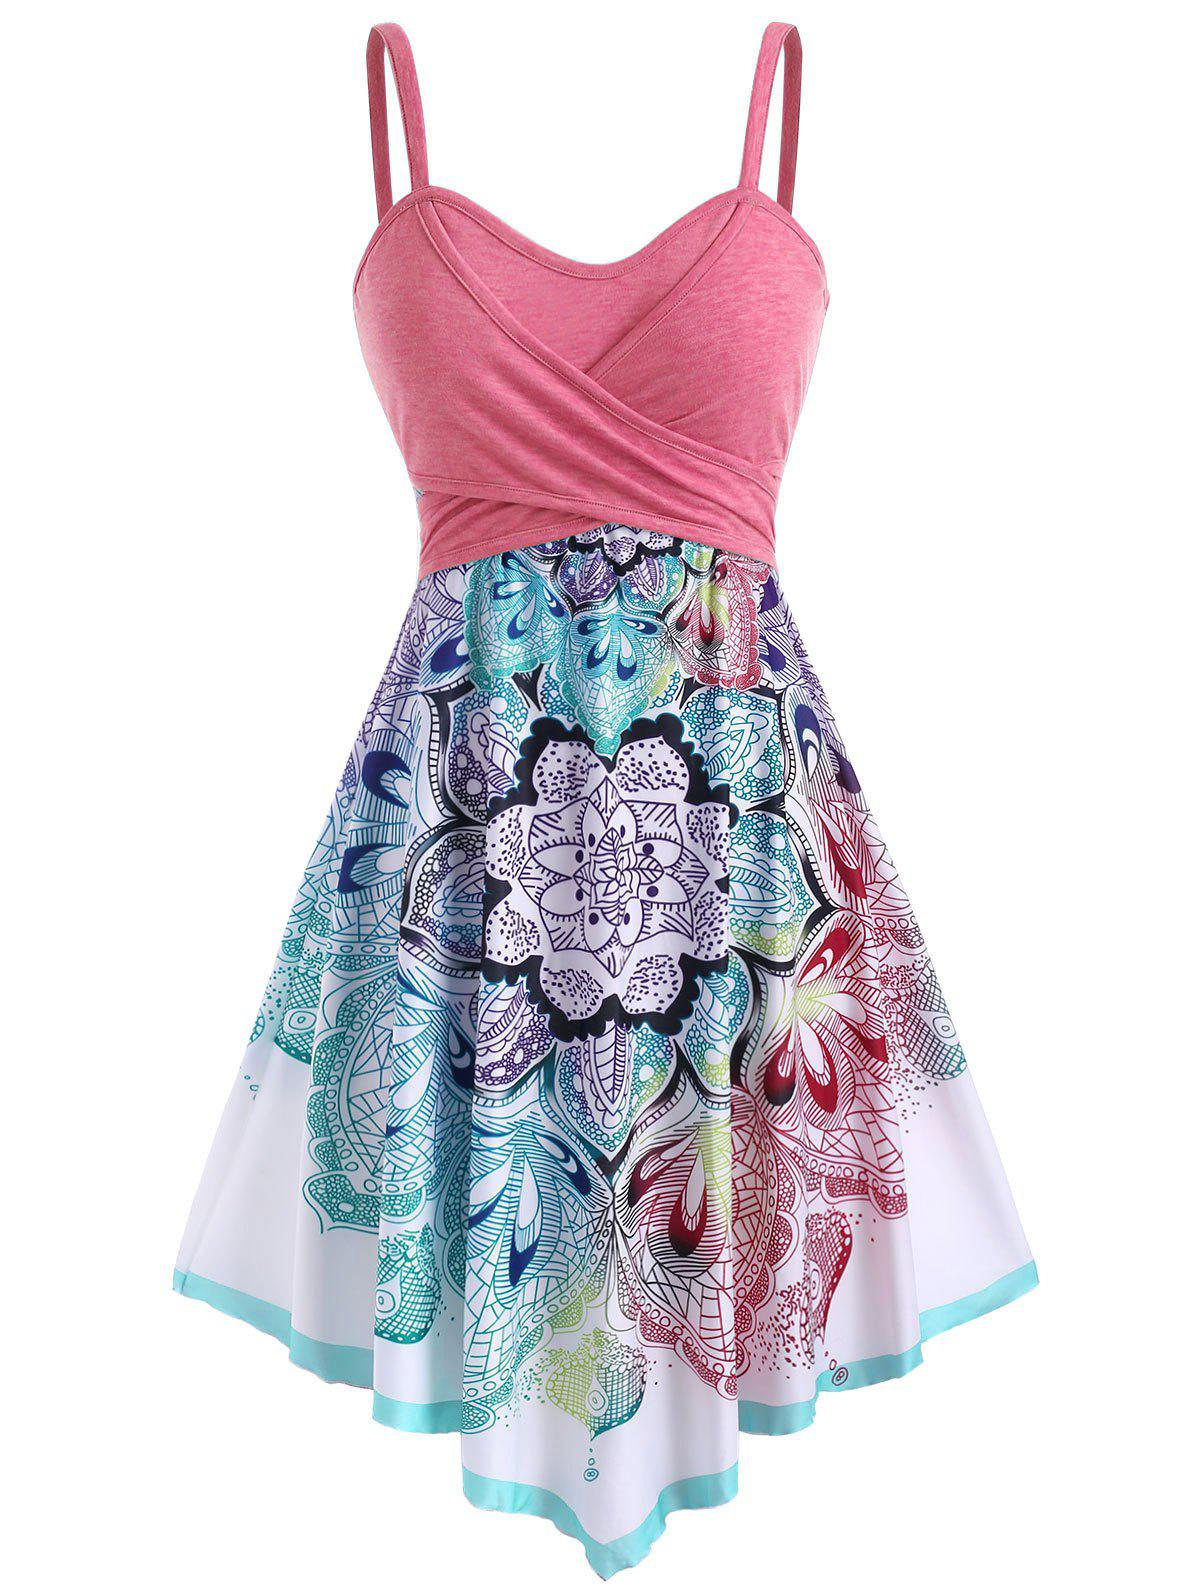 Shops Bohemian Flower Crossover Sleeveless Dress